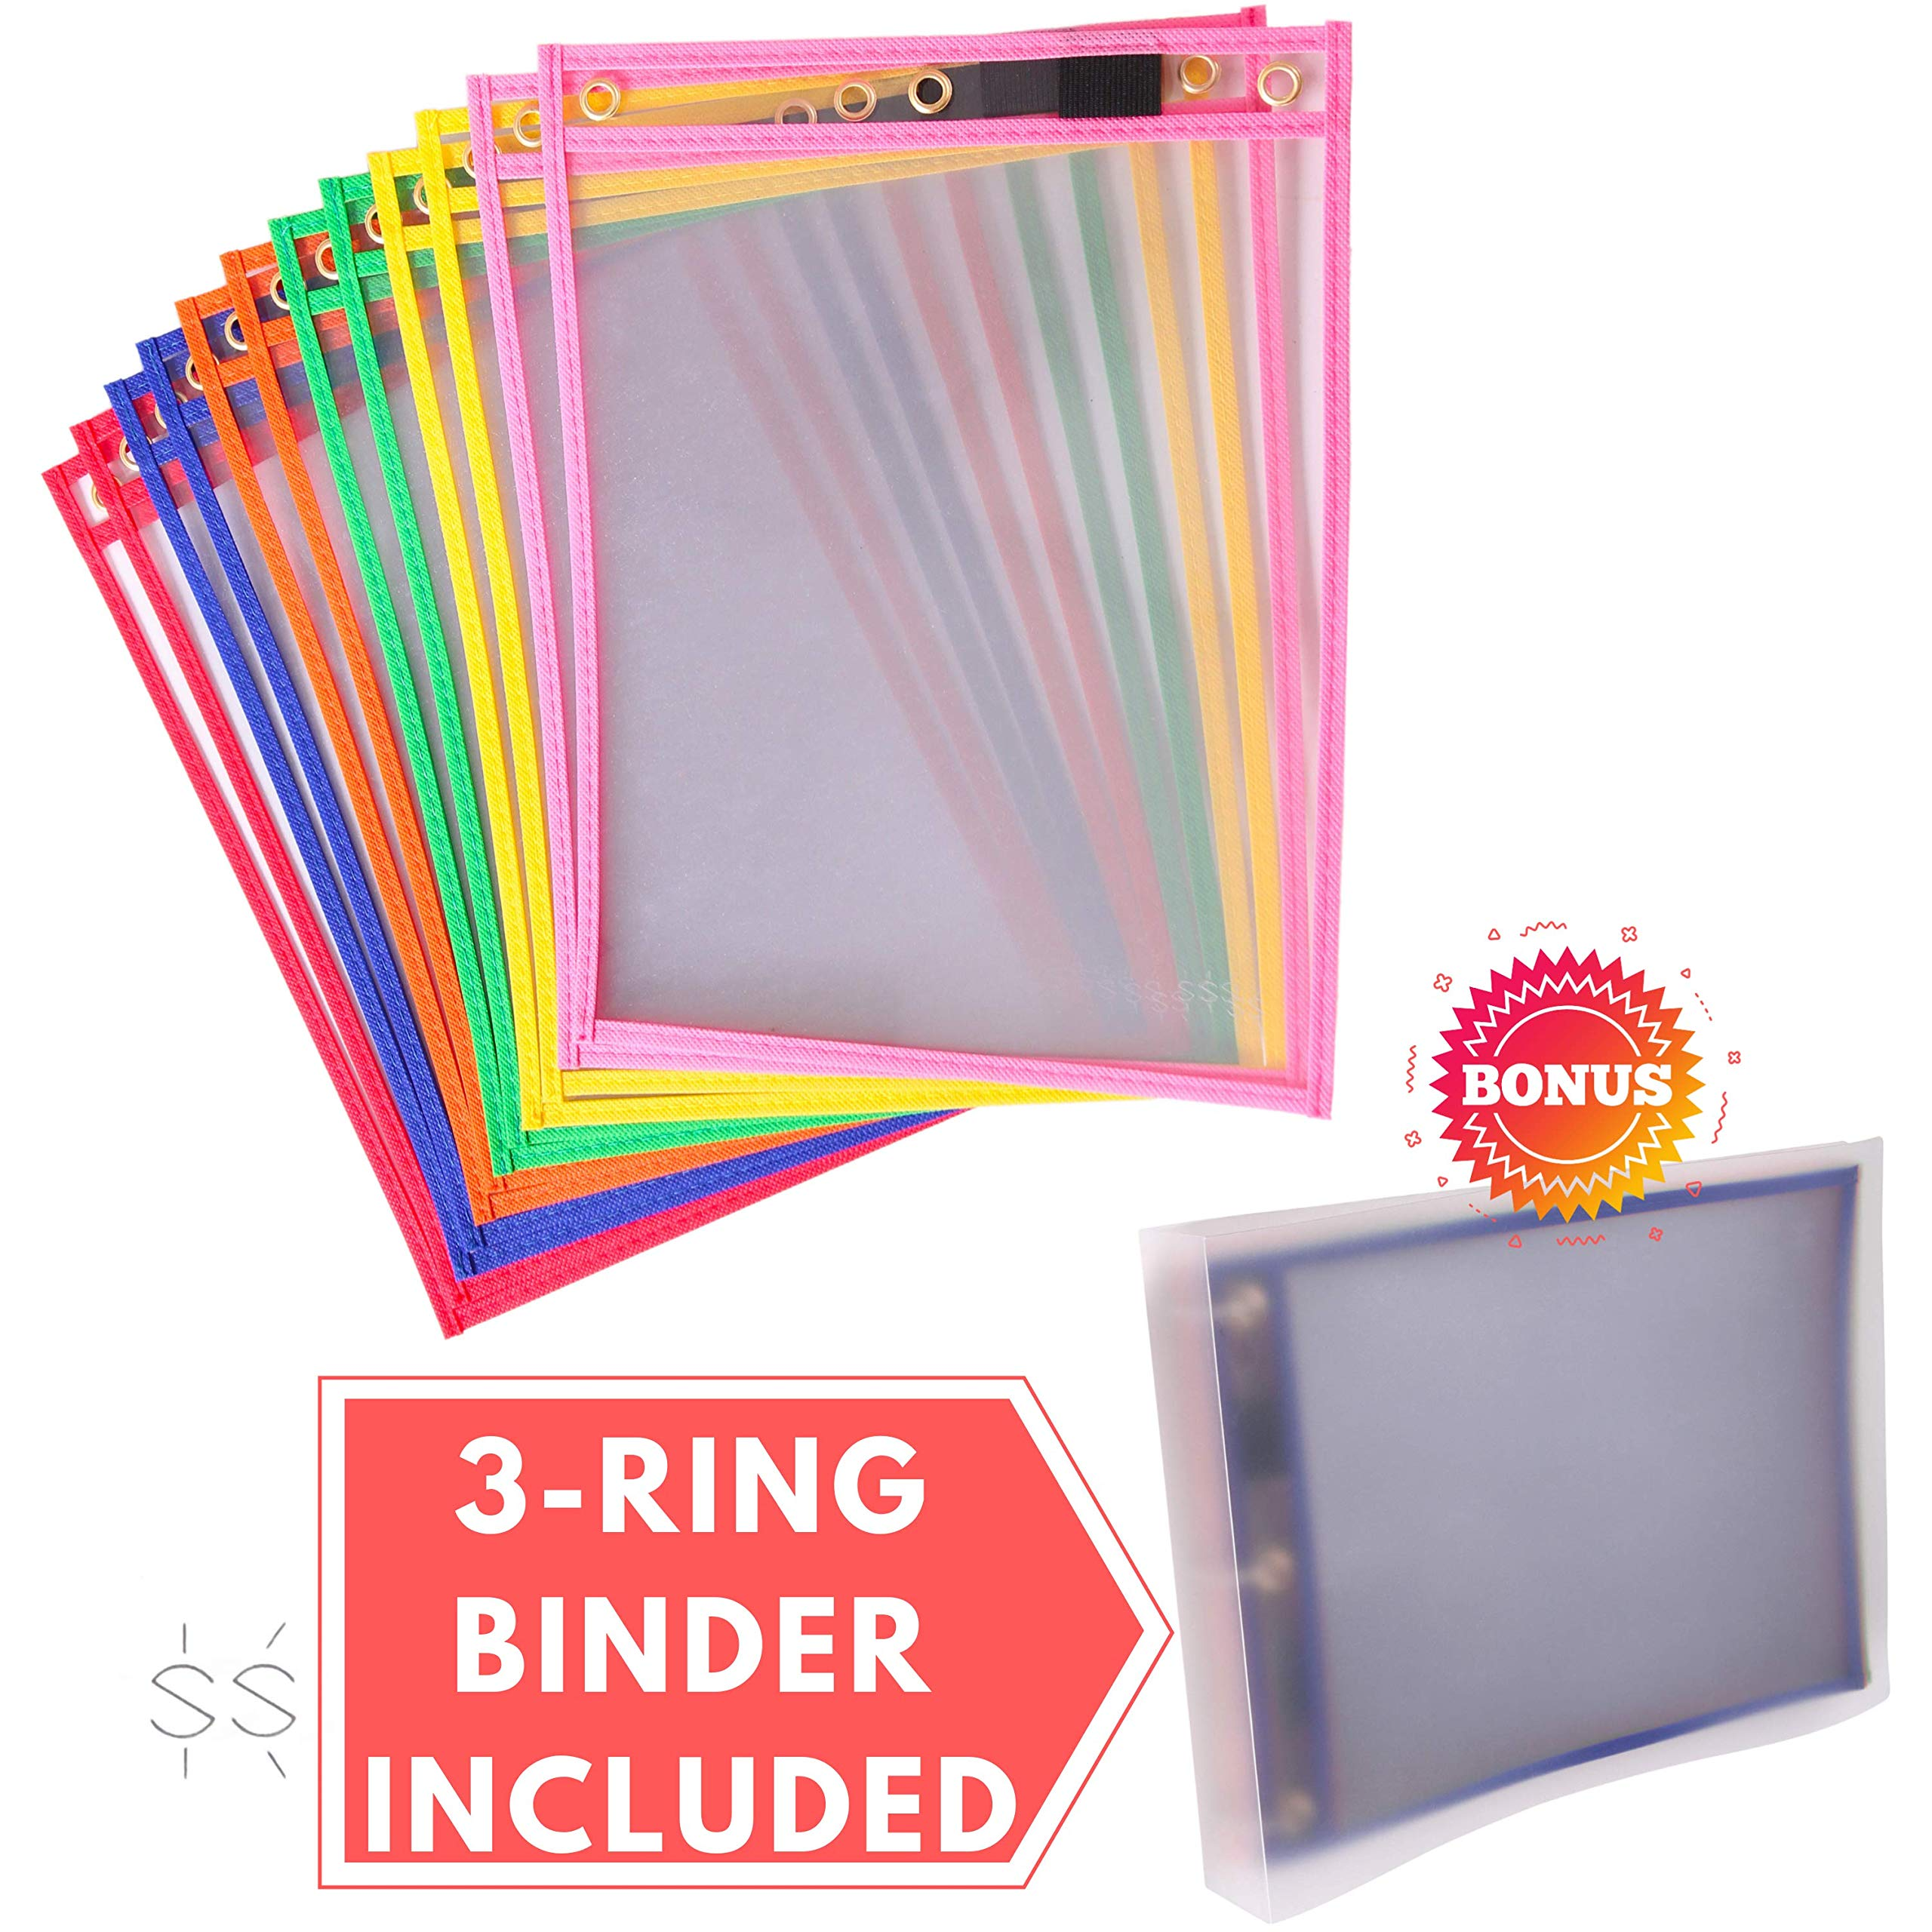 Dry Erase Pockets [10 x 13 inches] with Clear 3-Ring Binder [11 x 14 inches] | Pack of 12 Reusable Dry Erase Sleeves | Heavy Duty Job Ticket Holder | 6 Different Colors |